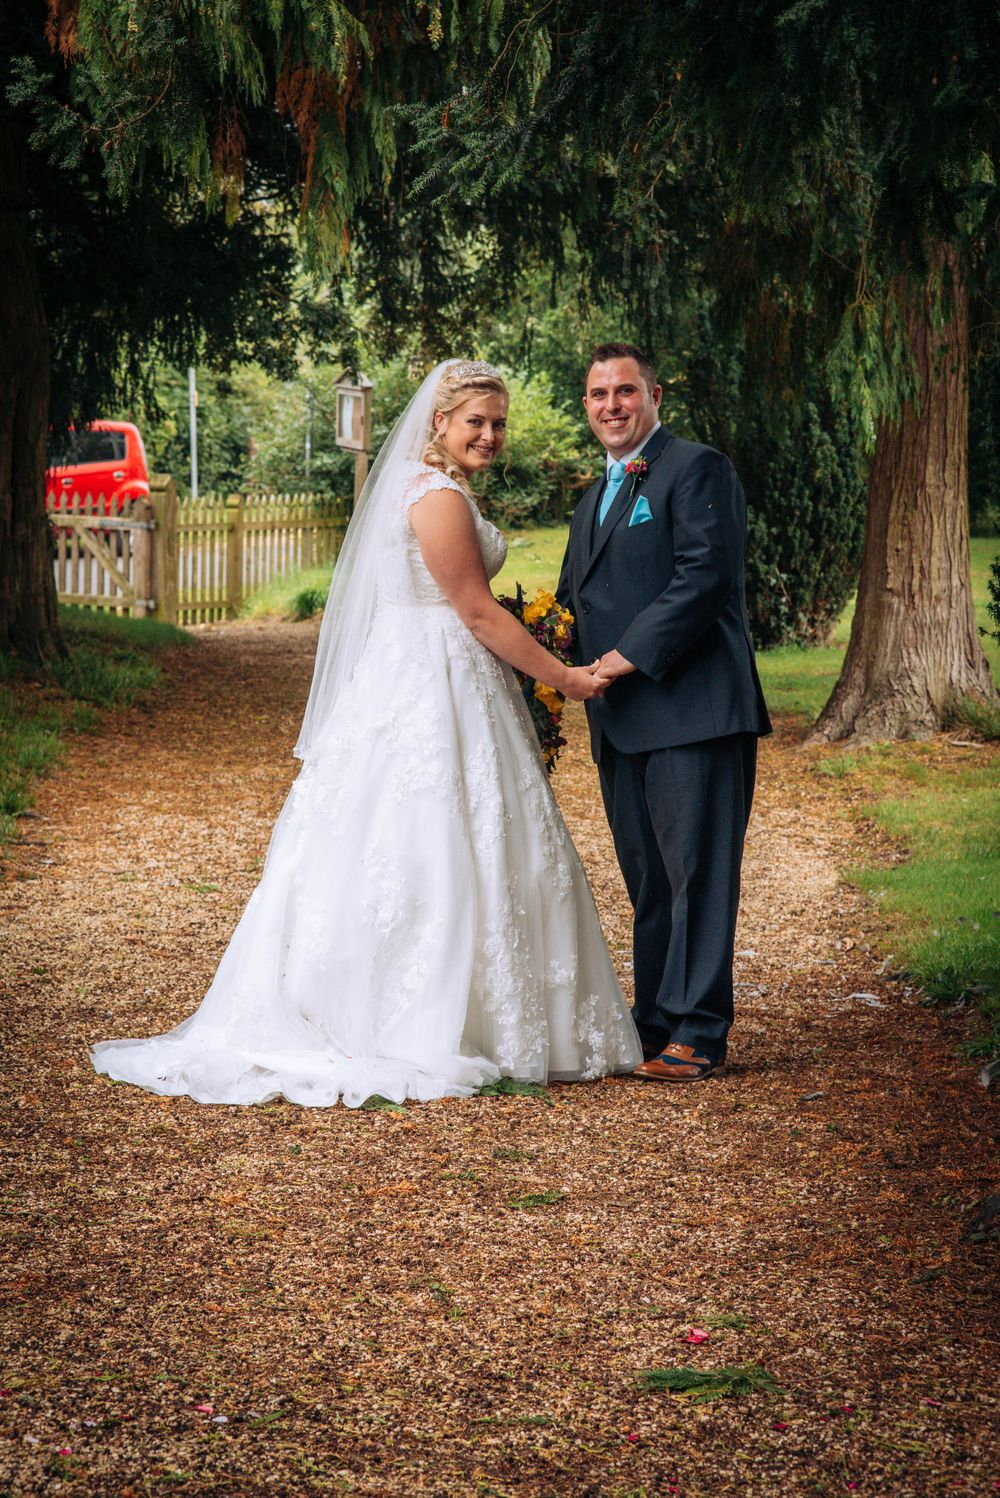 Elmore wedding by Zara Davis Photography, Gloucestershire walking down church path